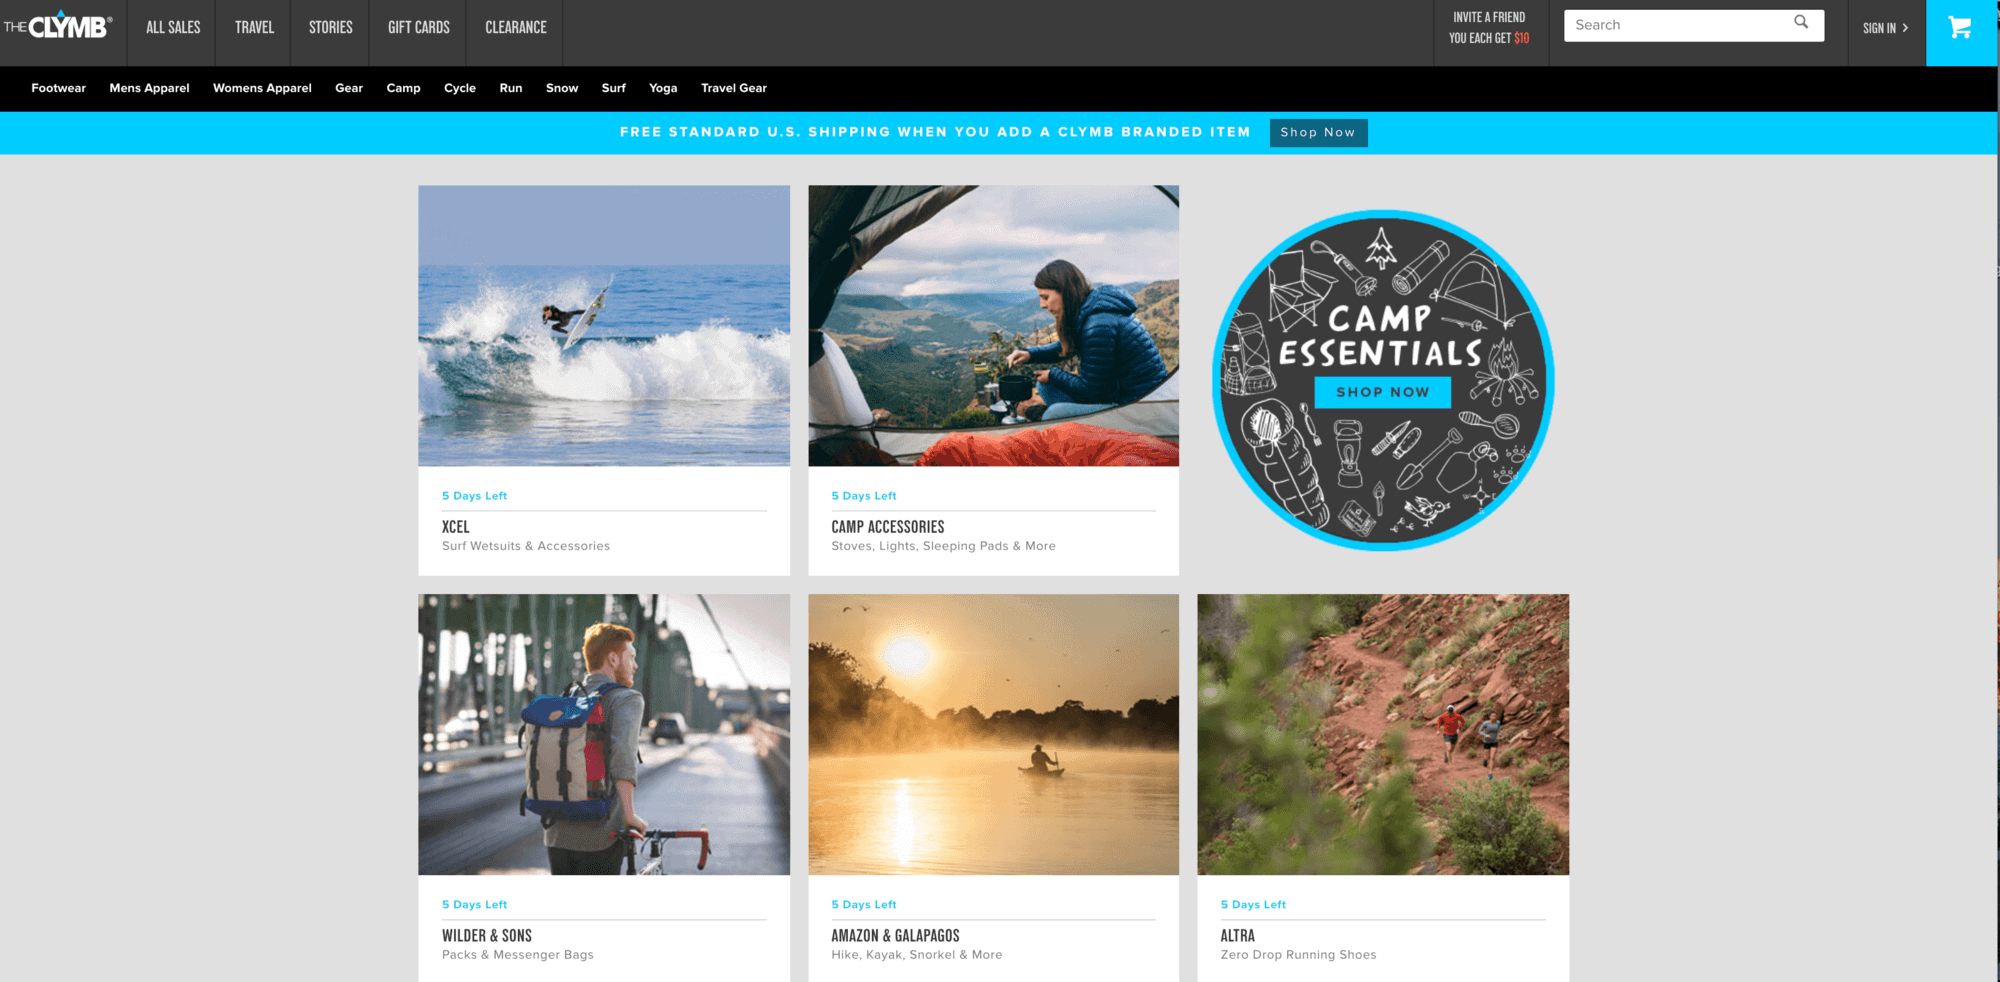 The Clymb - discounted outdoor gear